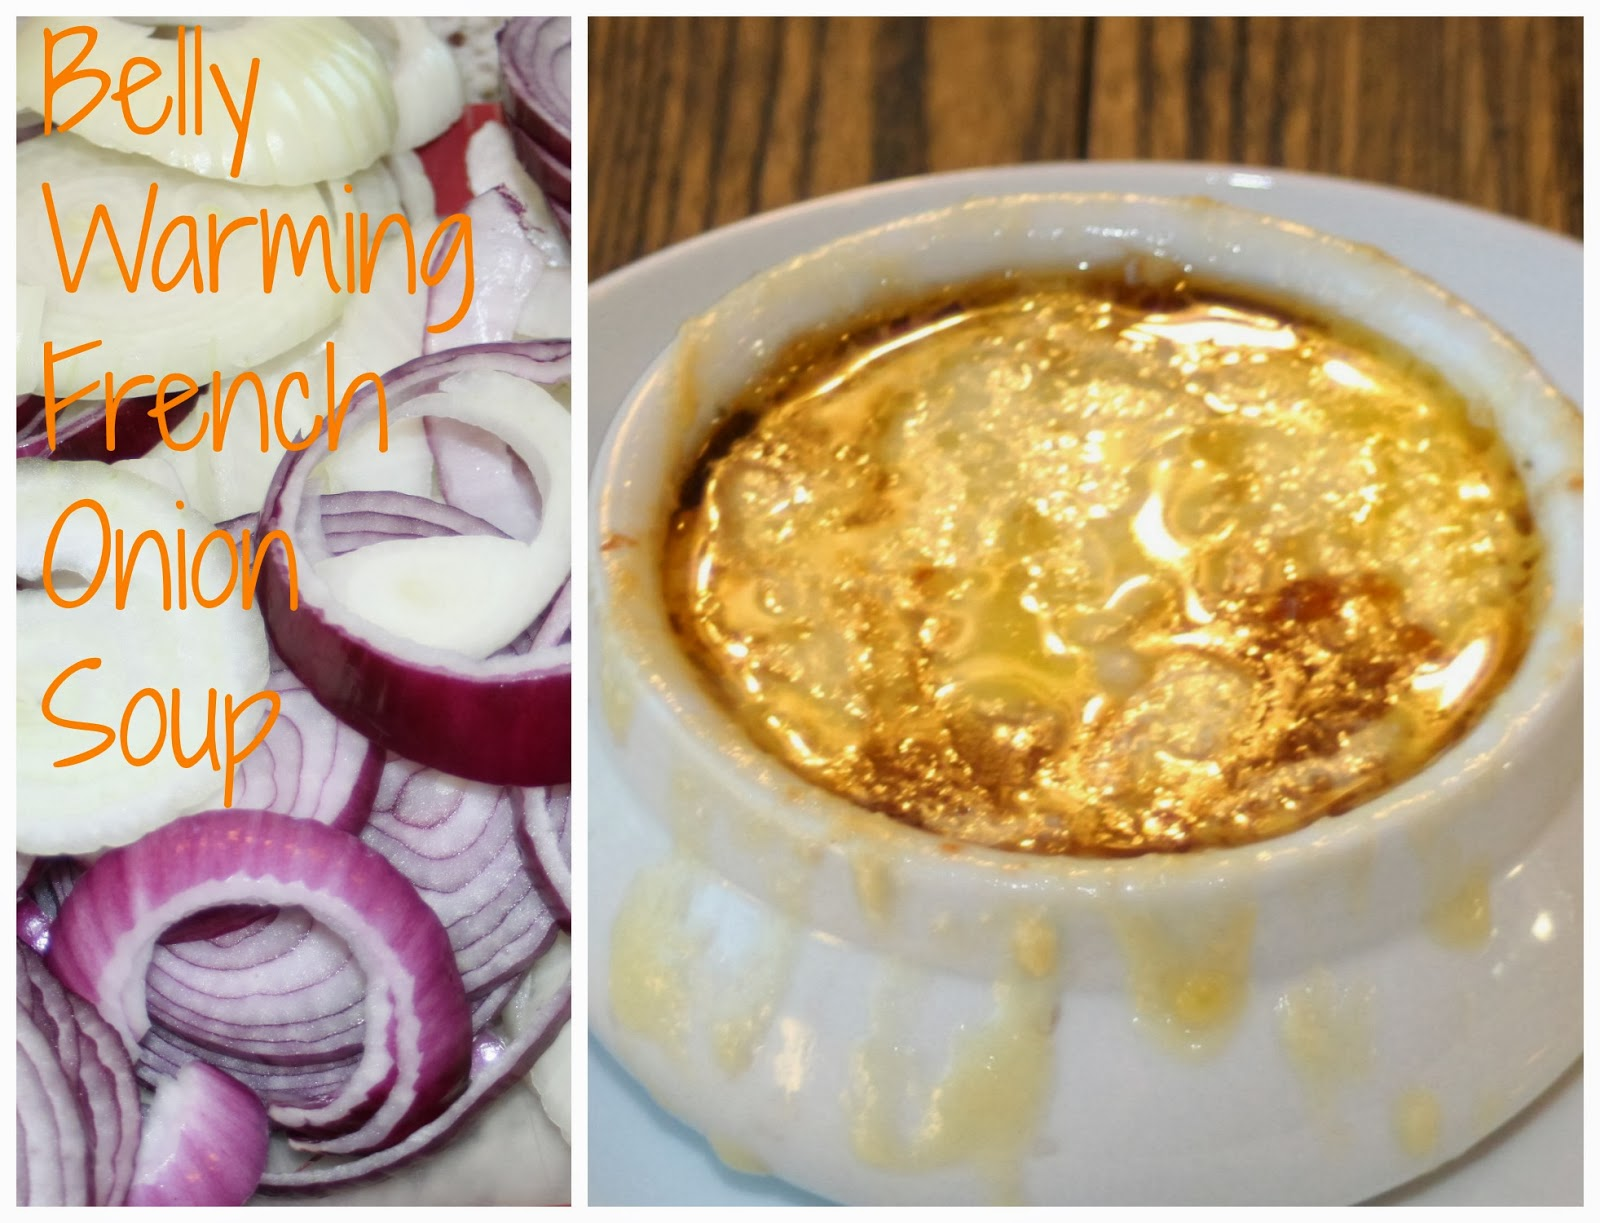 Happily Island After: Belly Warming French Onion Soup